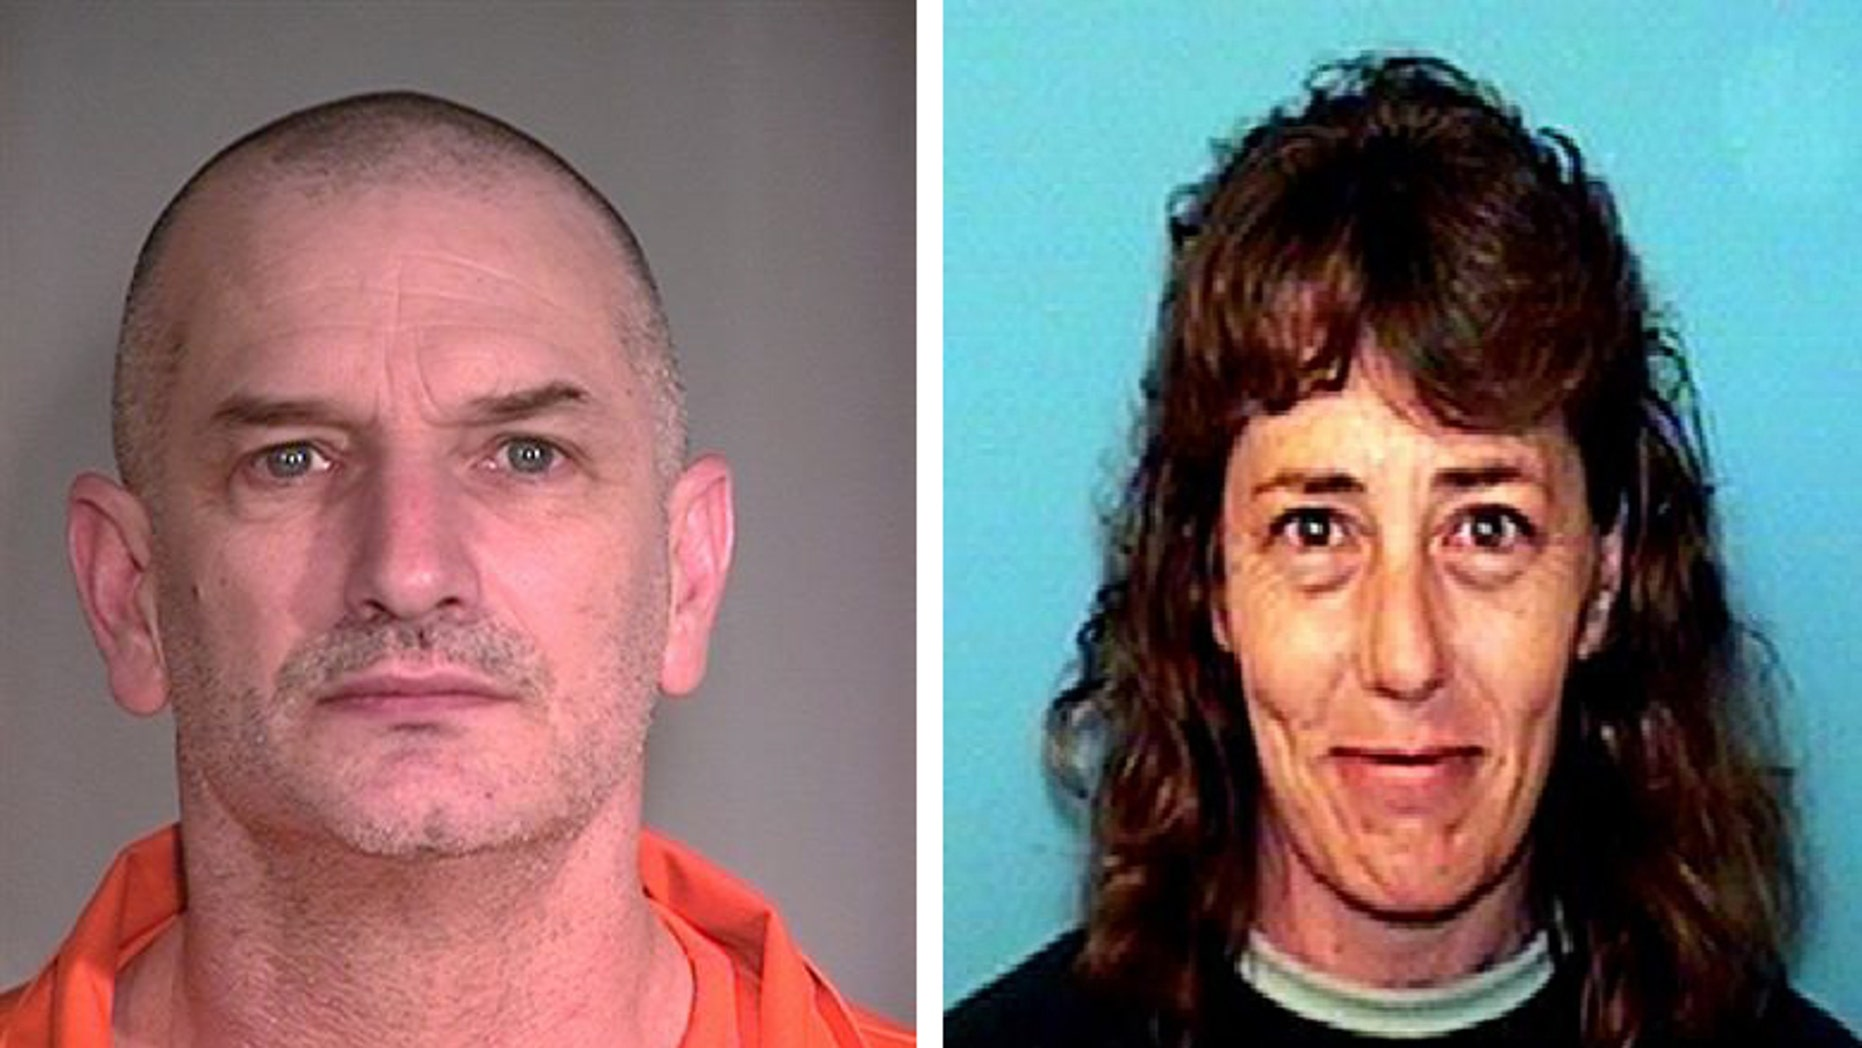 Fugitives John McCluskey and Casslyn Welch were captured Aug. 19 in the Apache Sitgreaves forest in Arizona.